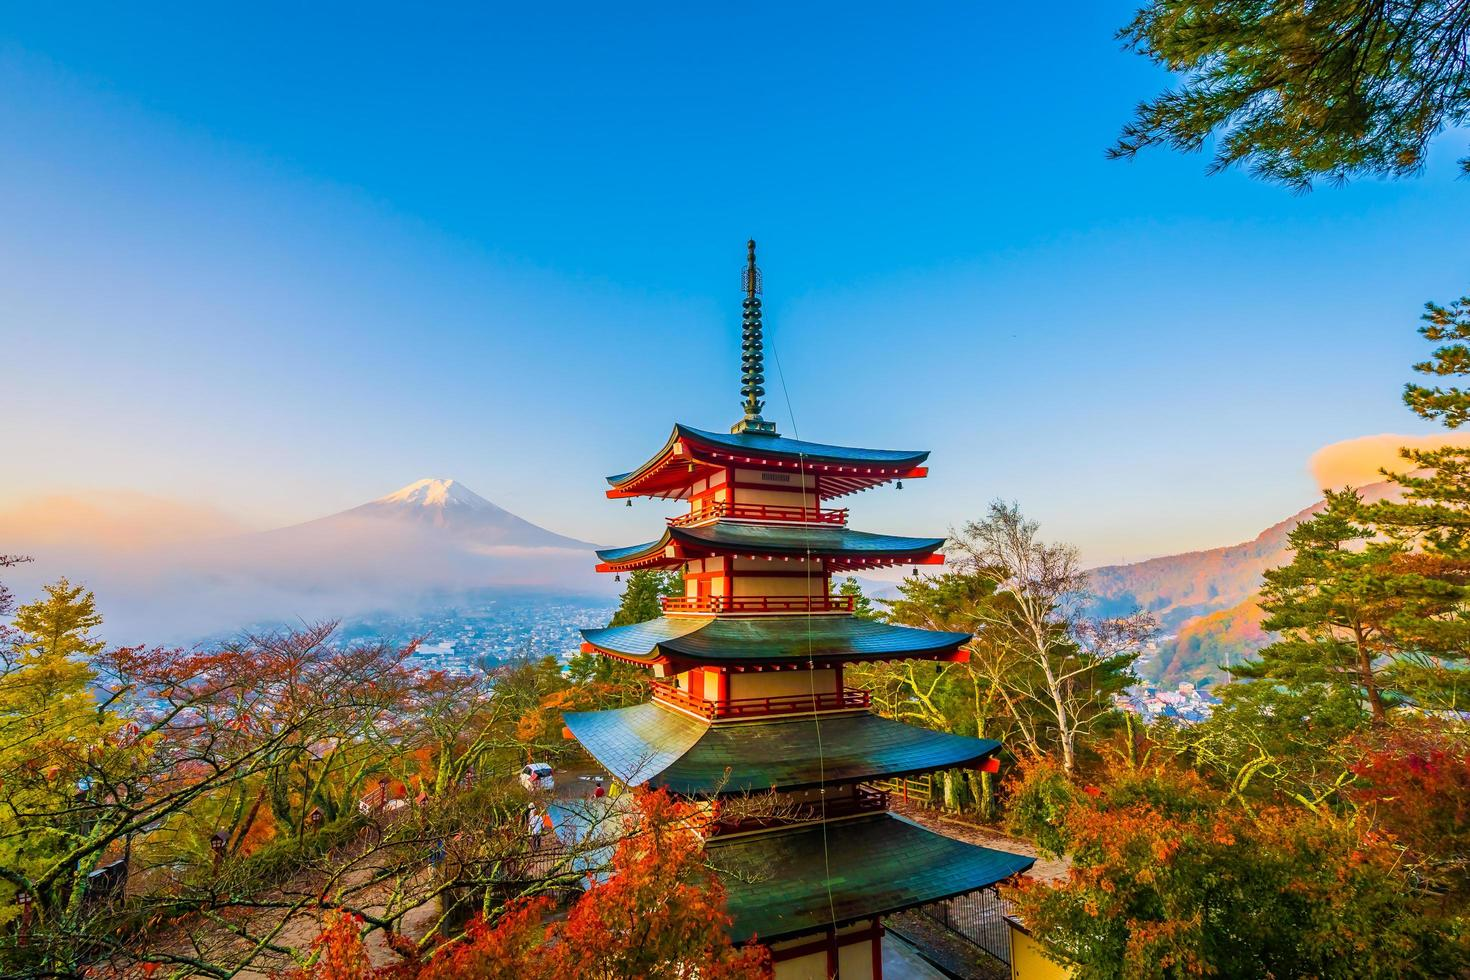 Beautiful landscape of Mt. Fuji with Chureito Pagoda, Japan photo